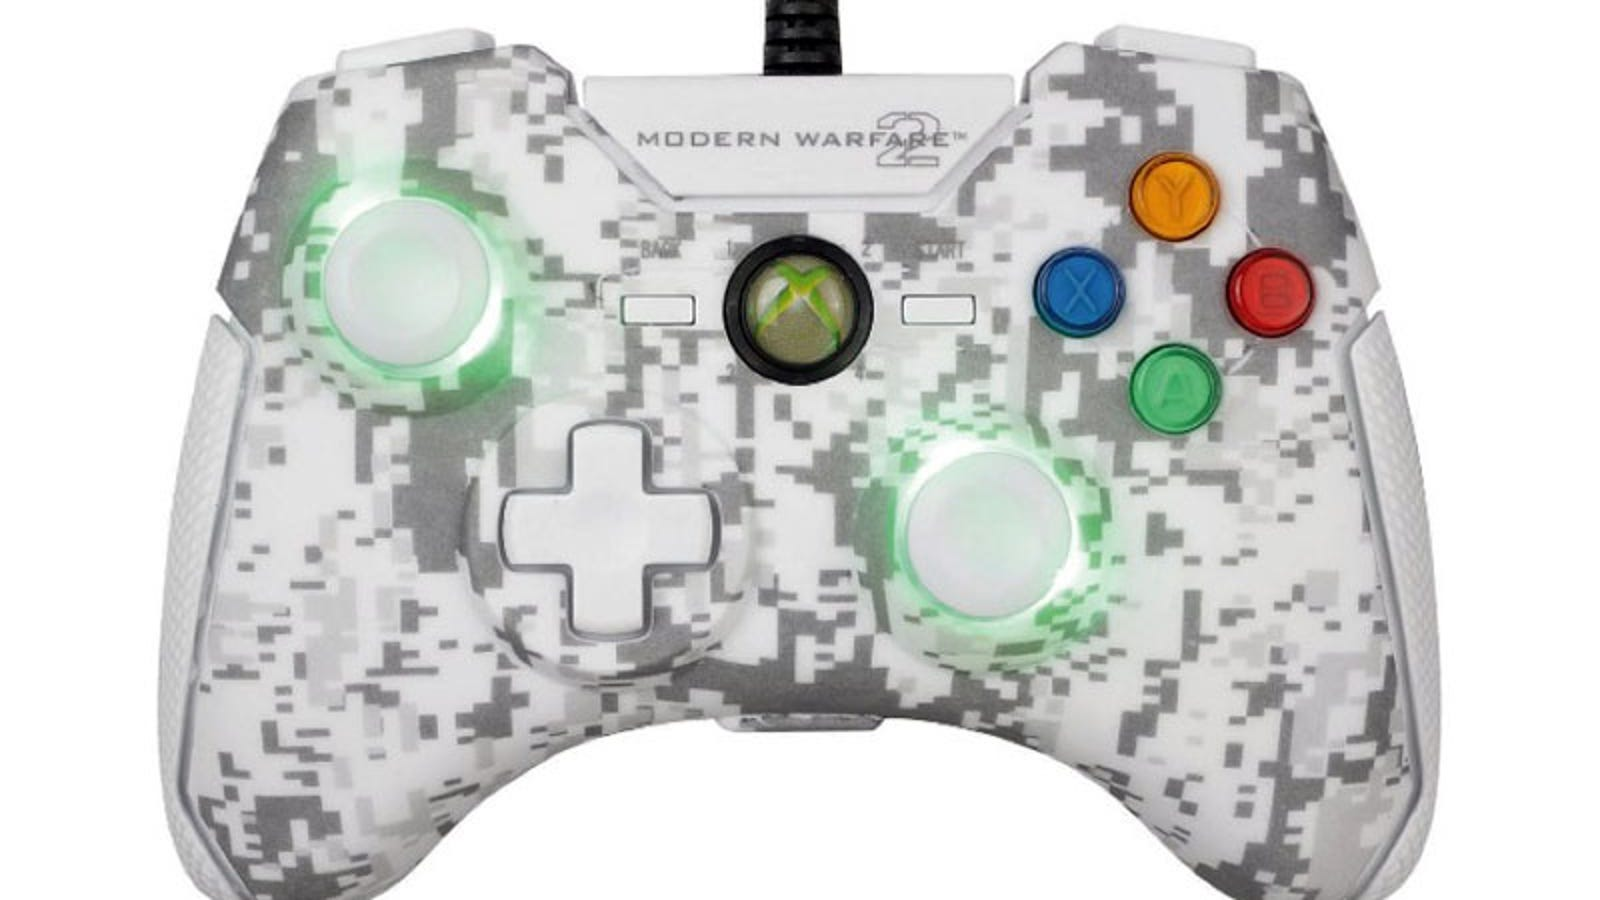 Modern Warfare 2 Xbox 360 Combat Controller Review: Plugged In